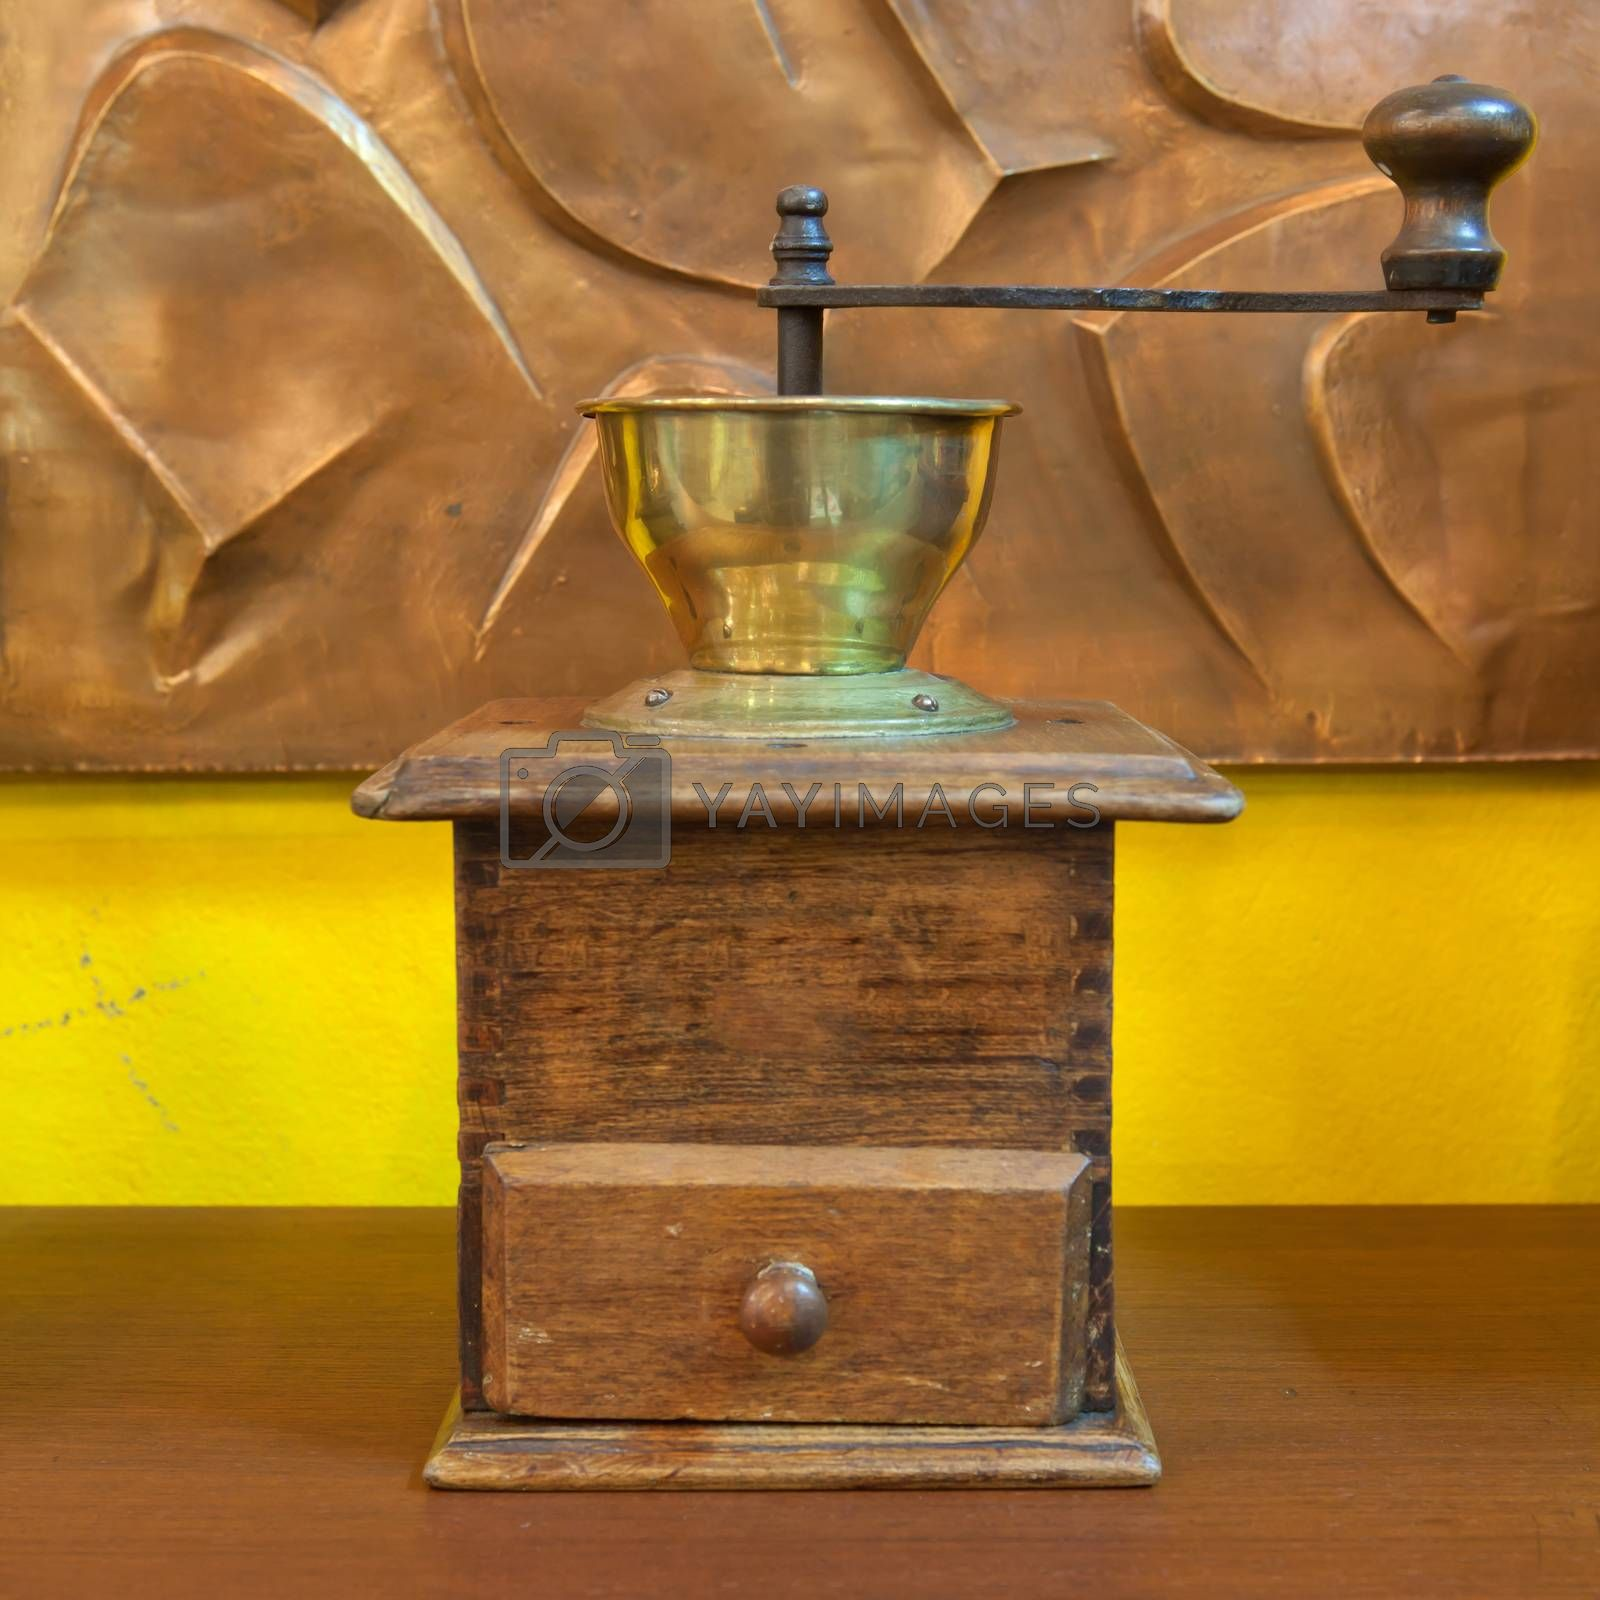 Vintage wooden coffee mill grinder